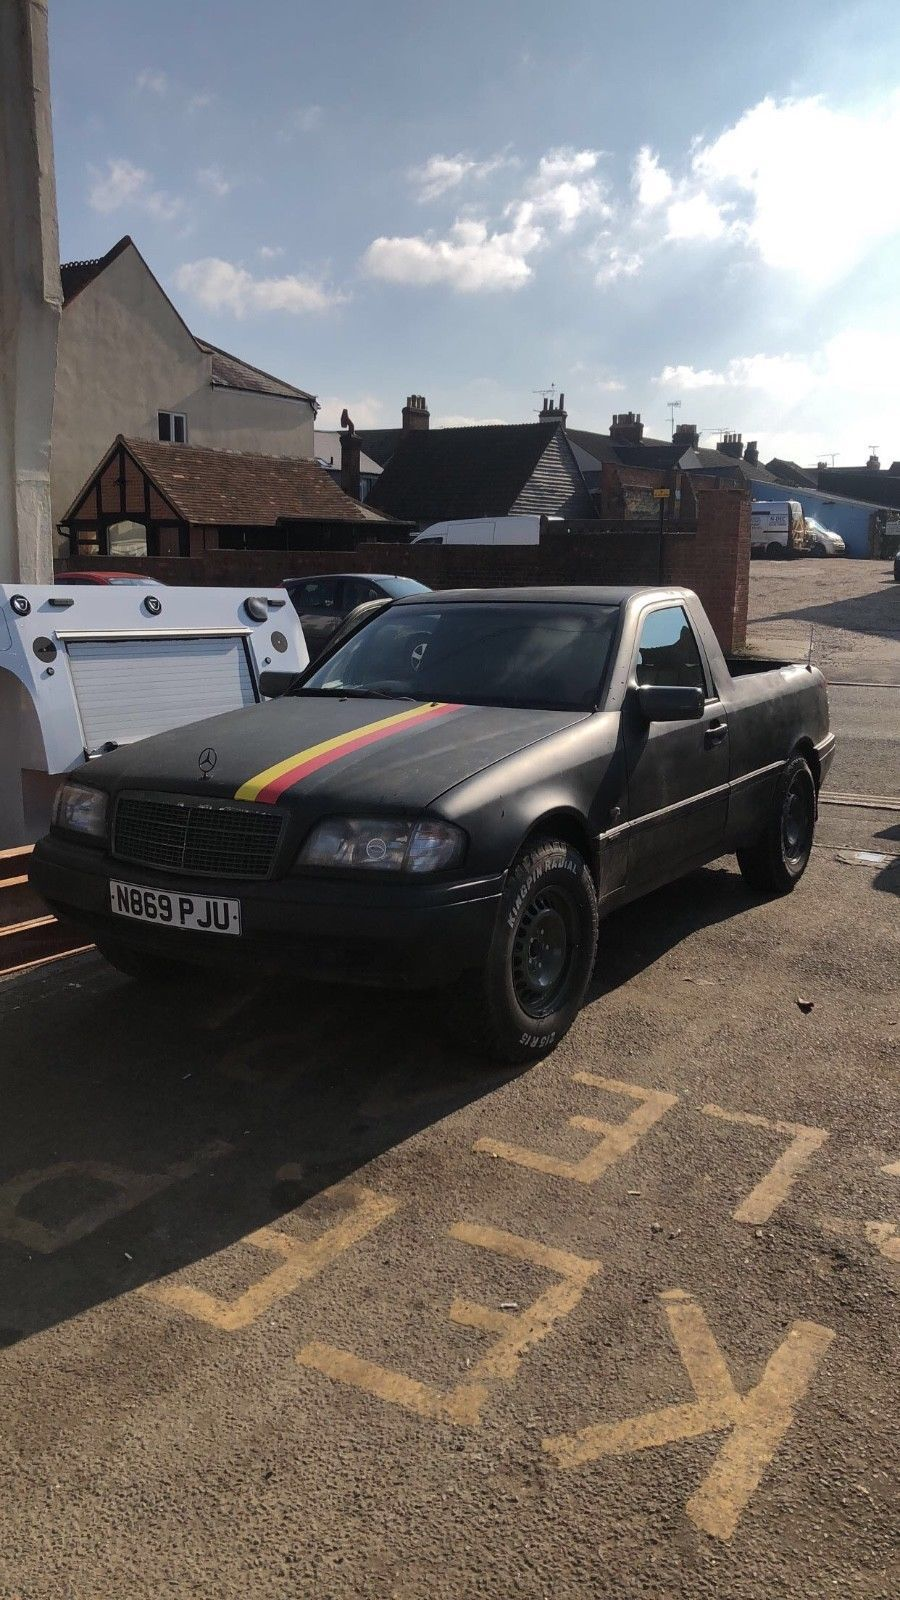 Mercedes C180 Pick up project car | Mercedes c180, Salvage cars and Cars